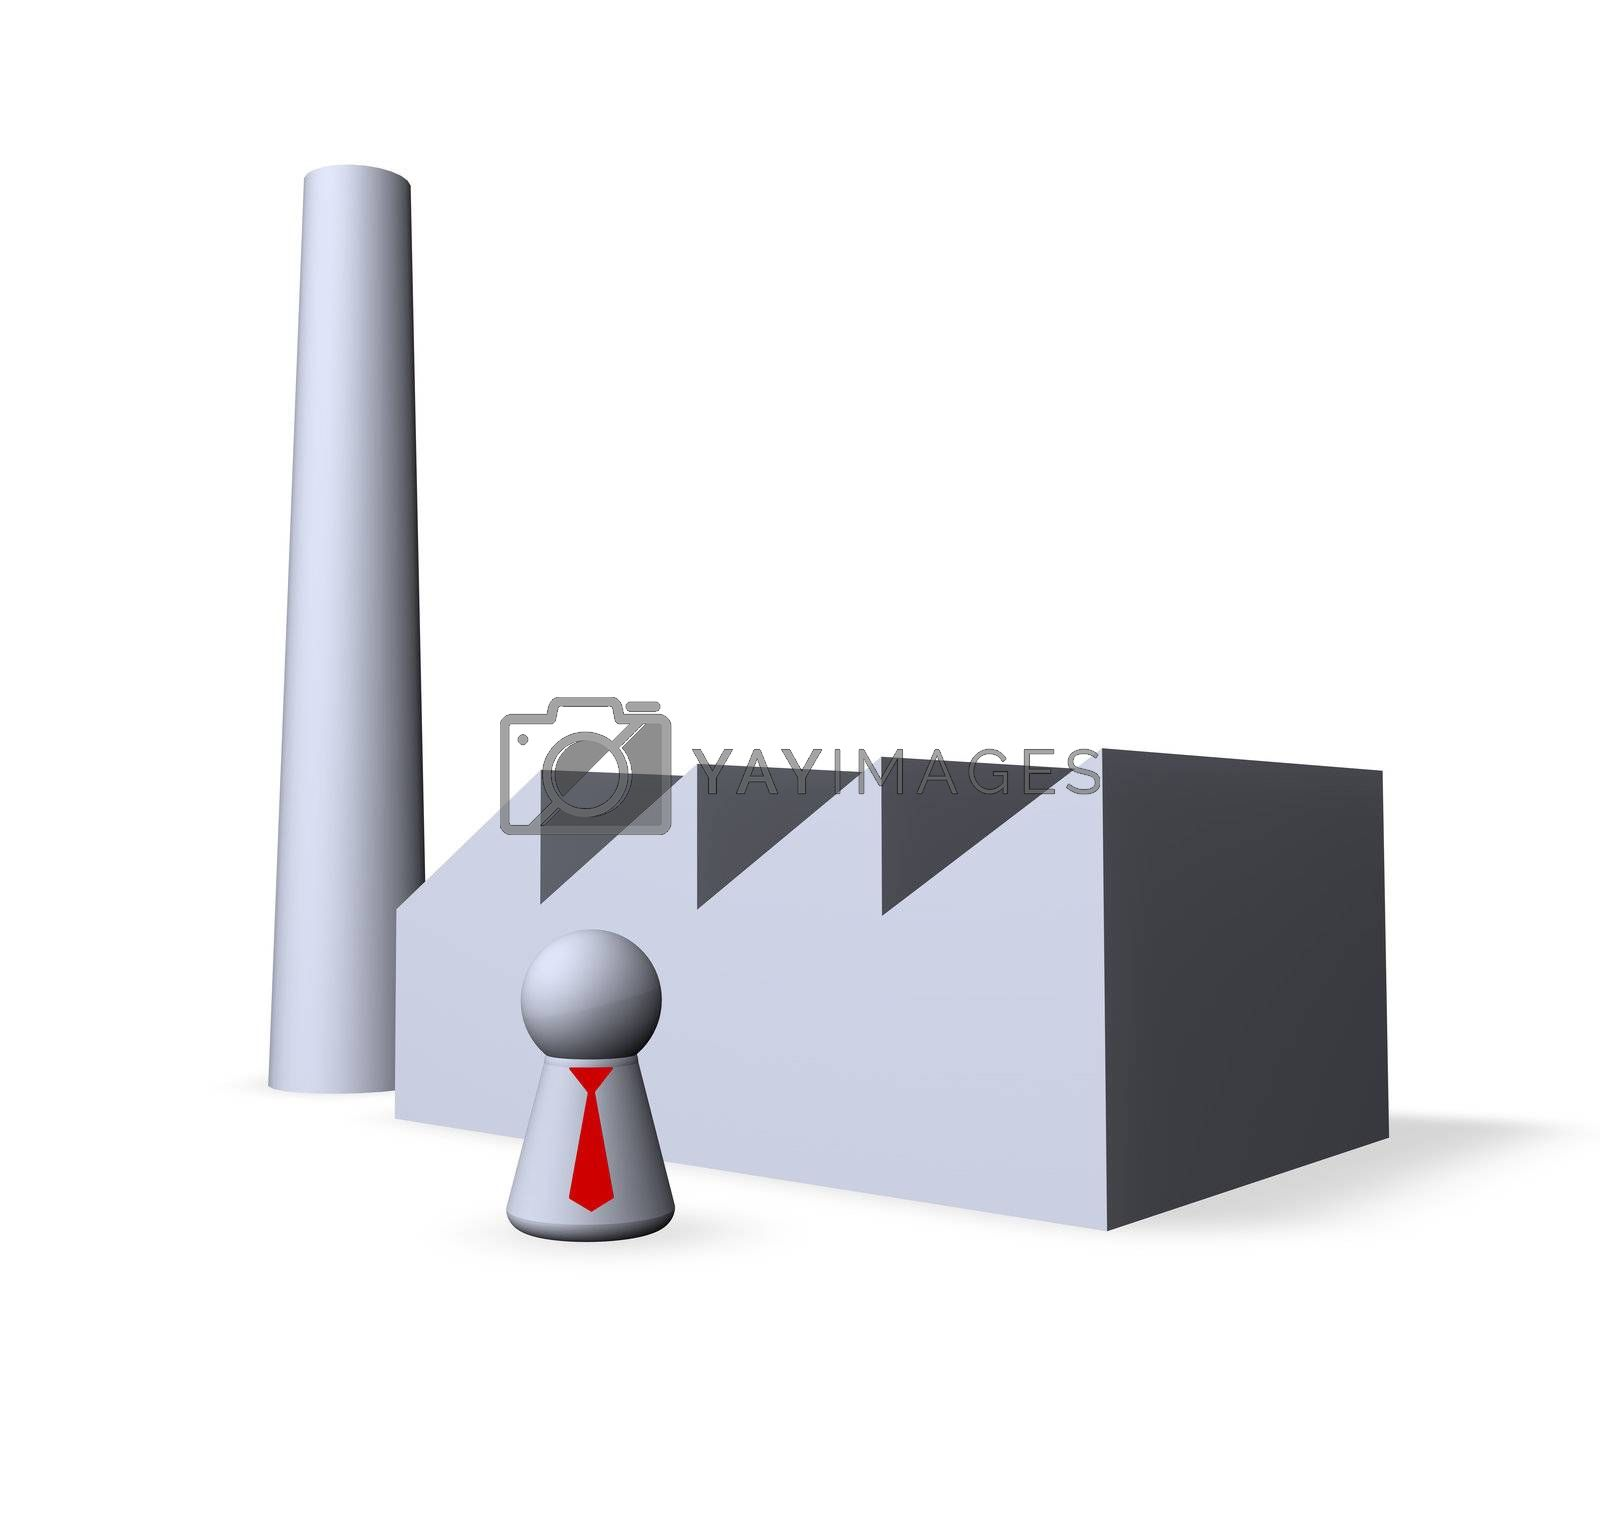 play figure with red tie and factory buildings